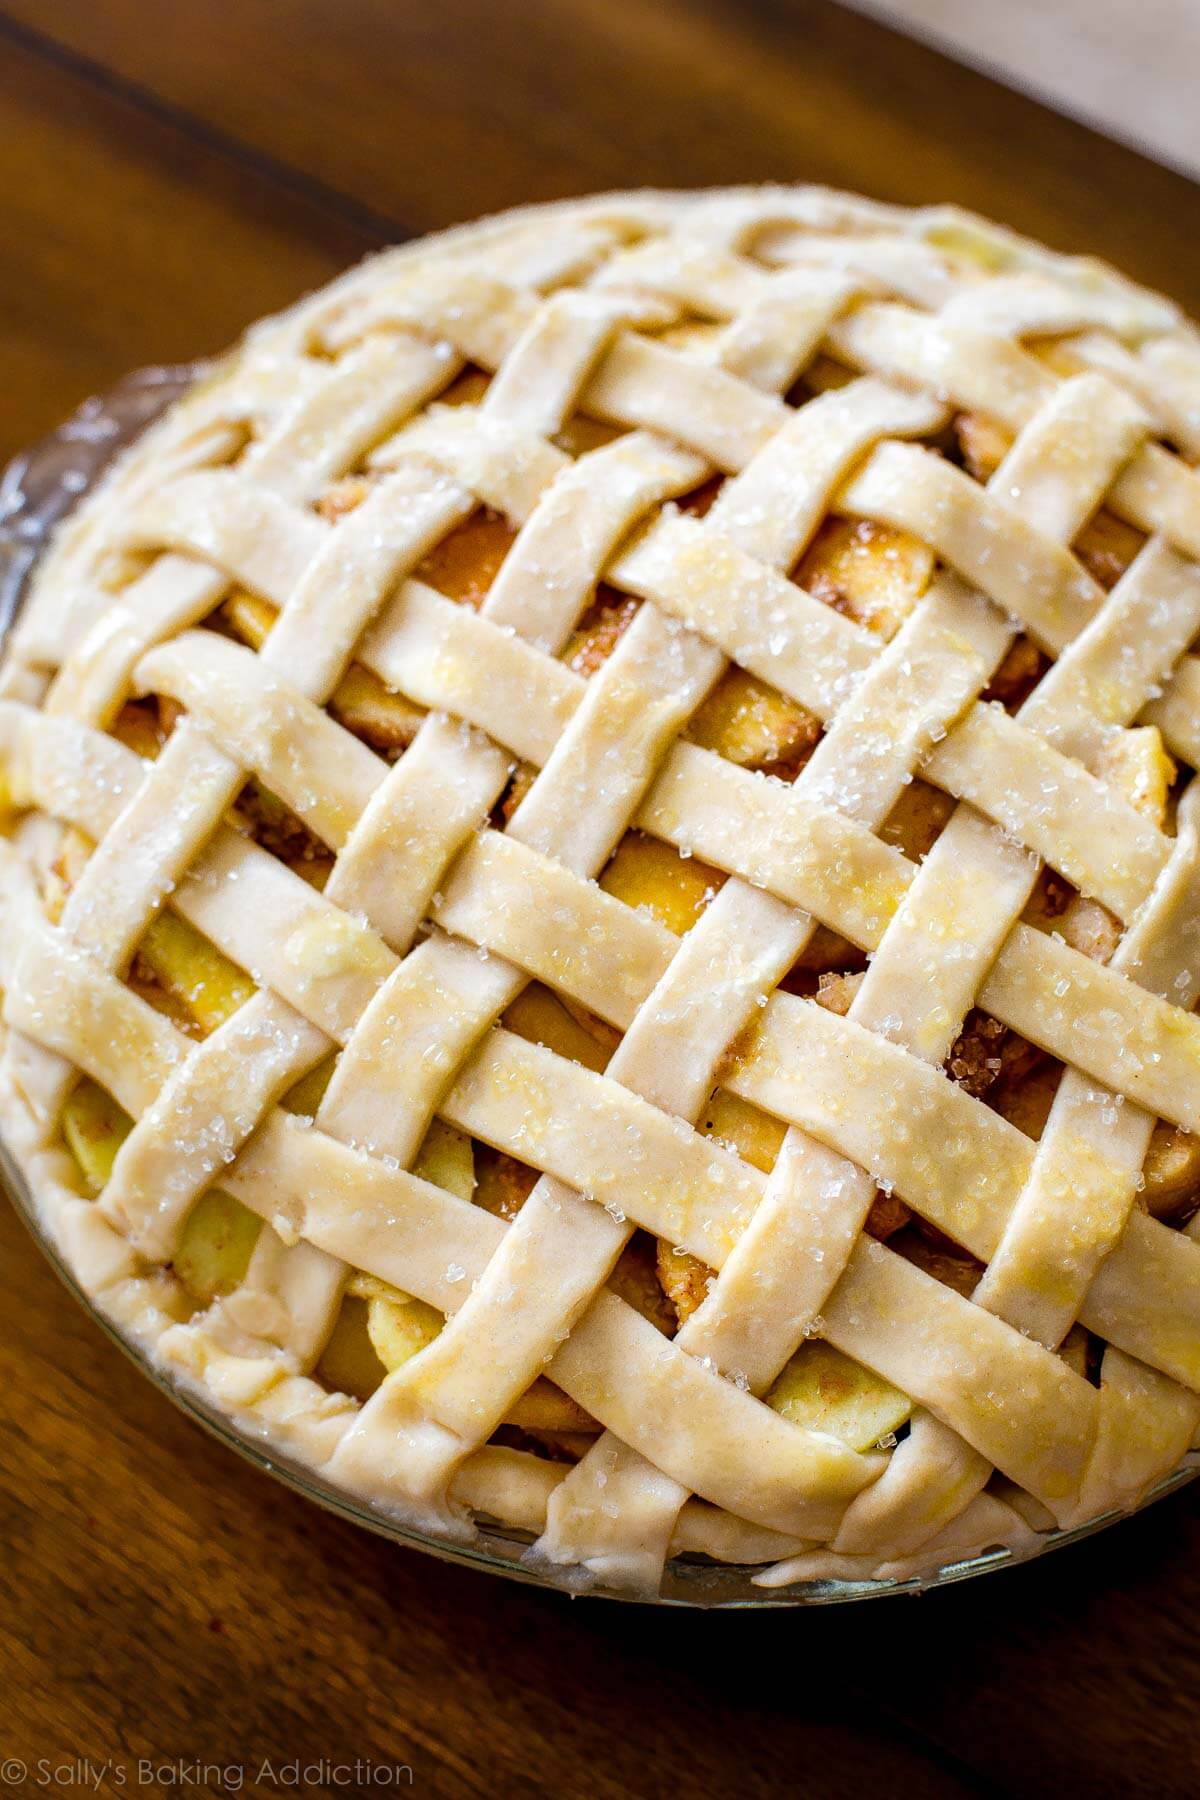 Salted caramel apple pie with lattice crust on sallysbakingaddiction.com